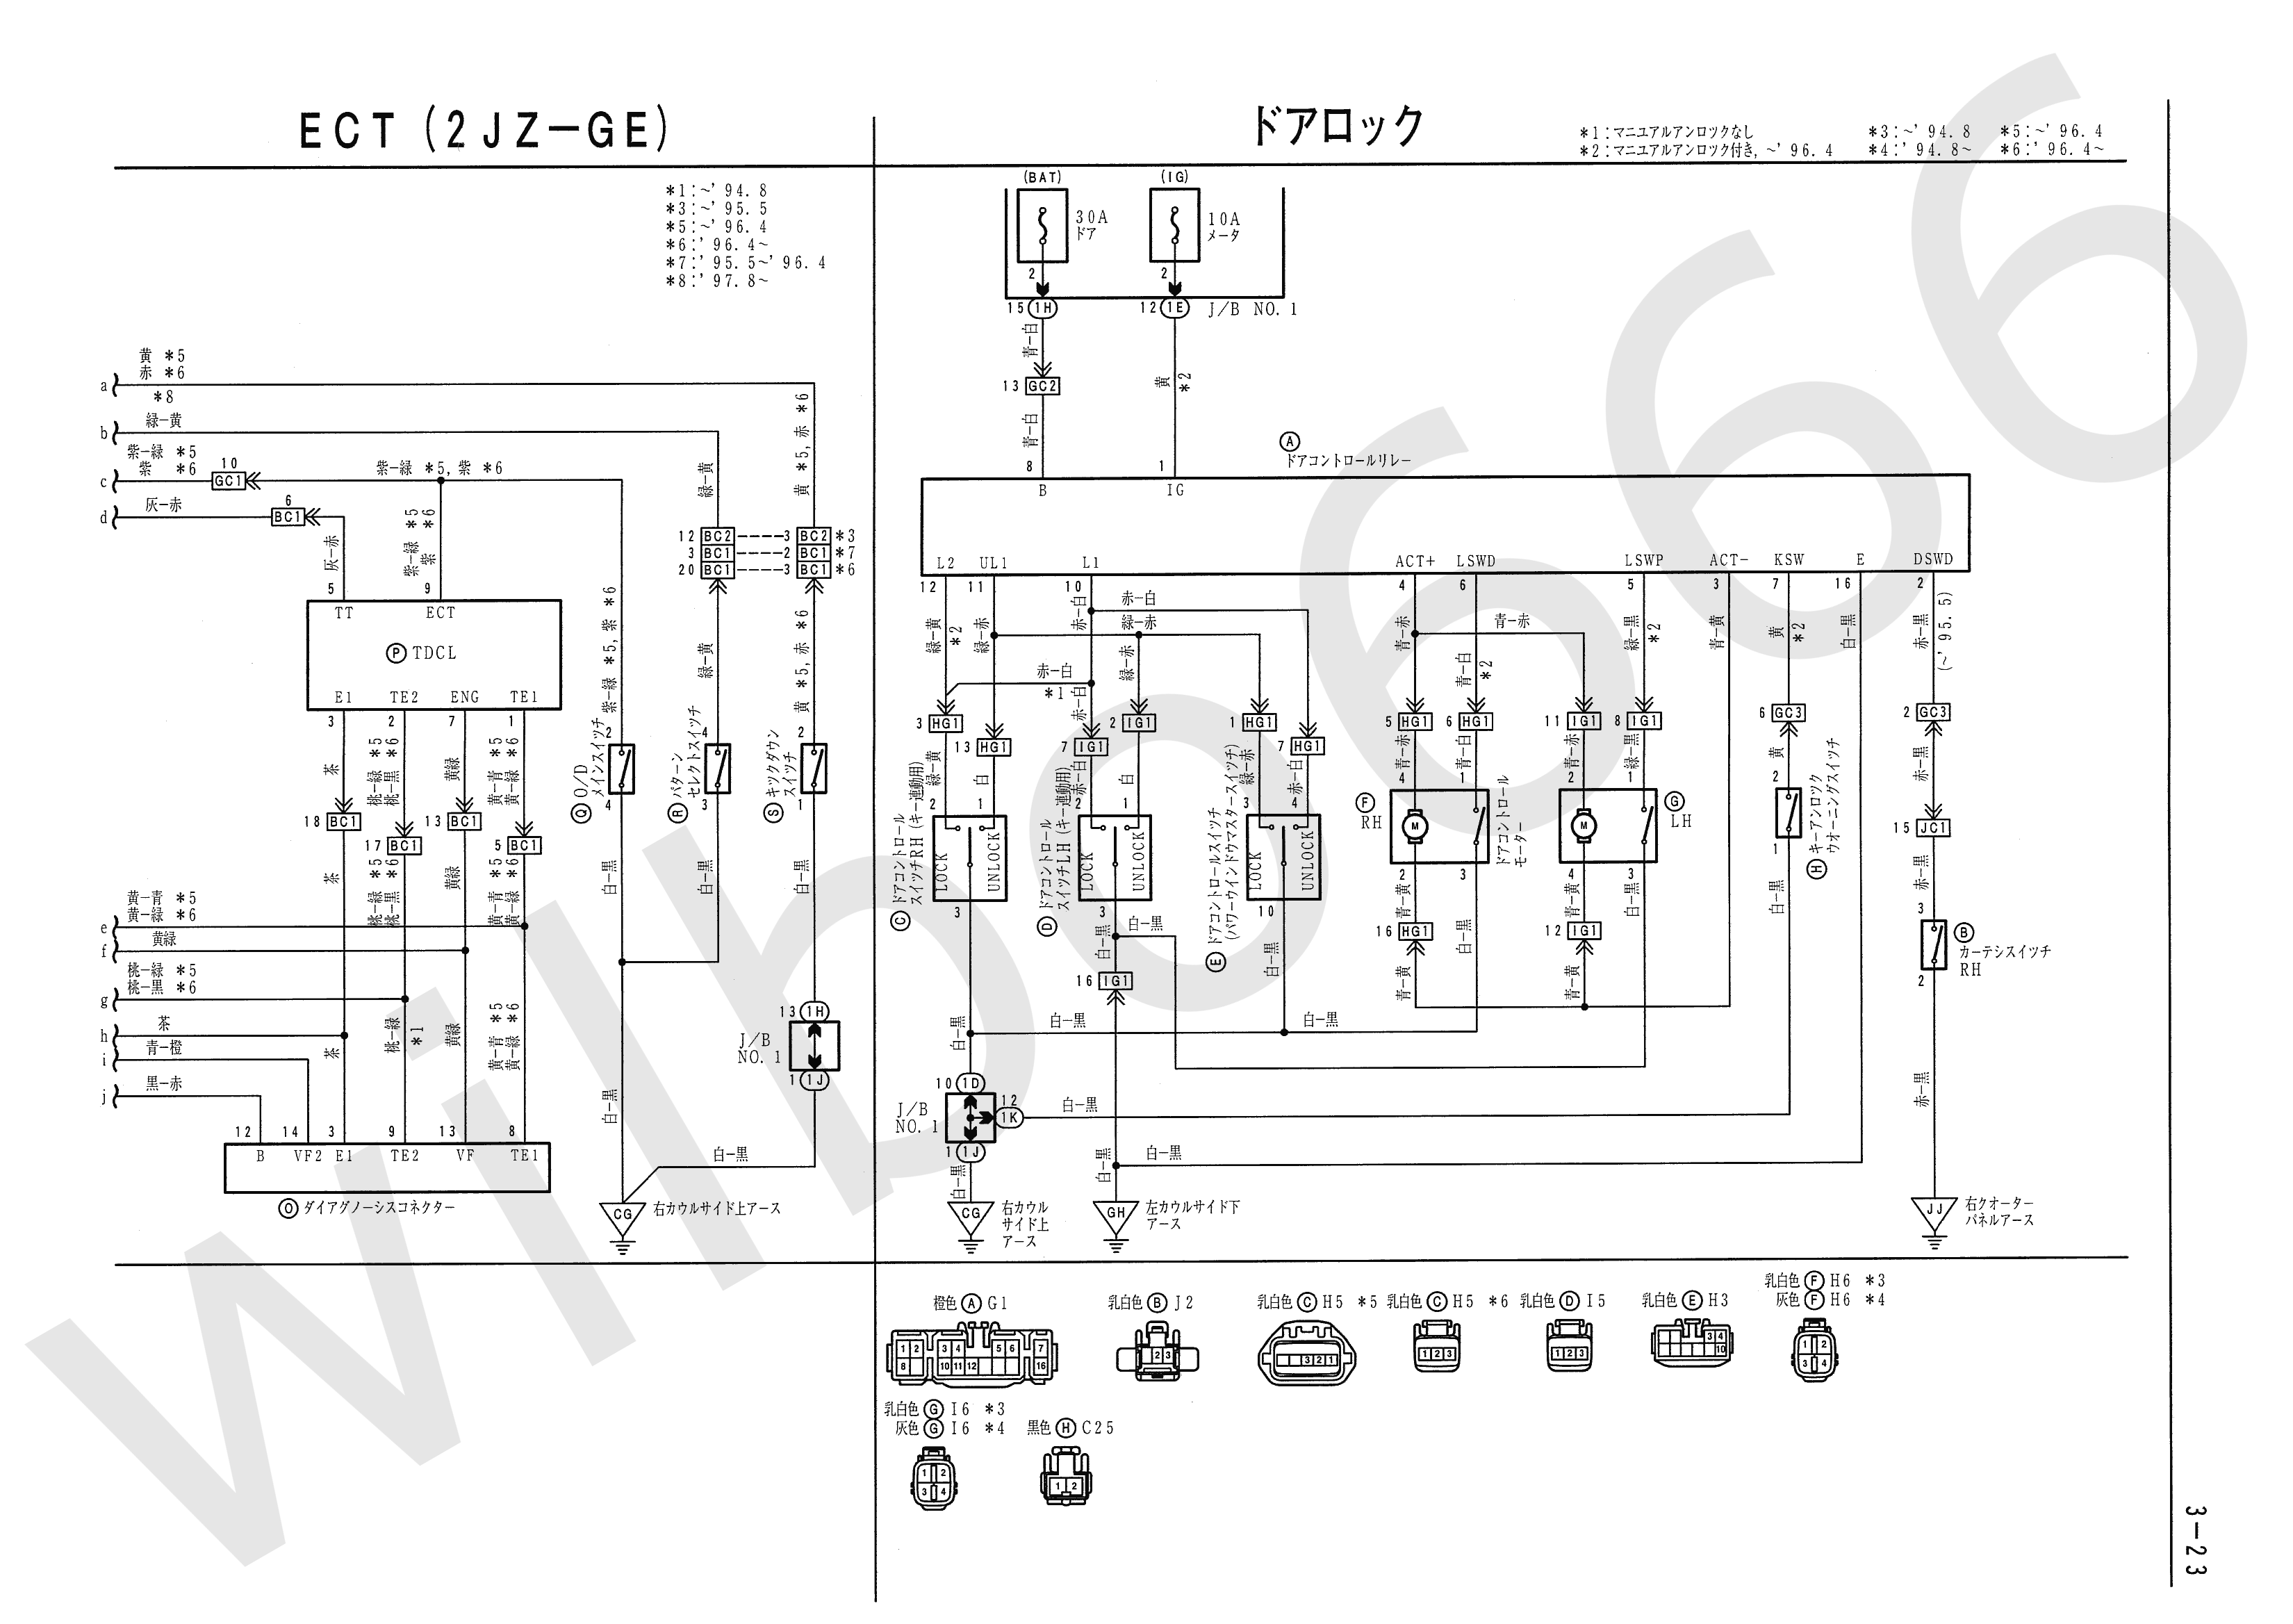 2jz ge ecu wiring diagram detailed schematics diagram rh keyplusrubber com toyota  supra engine specs toyota